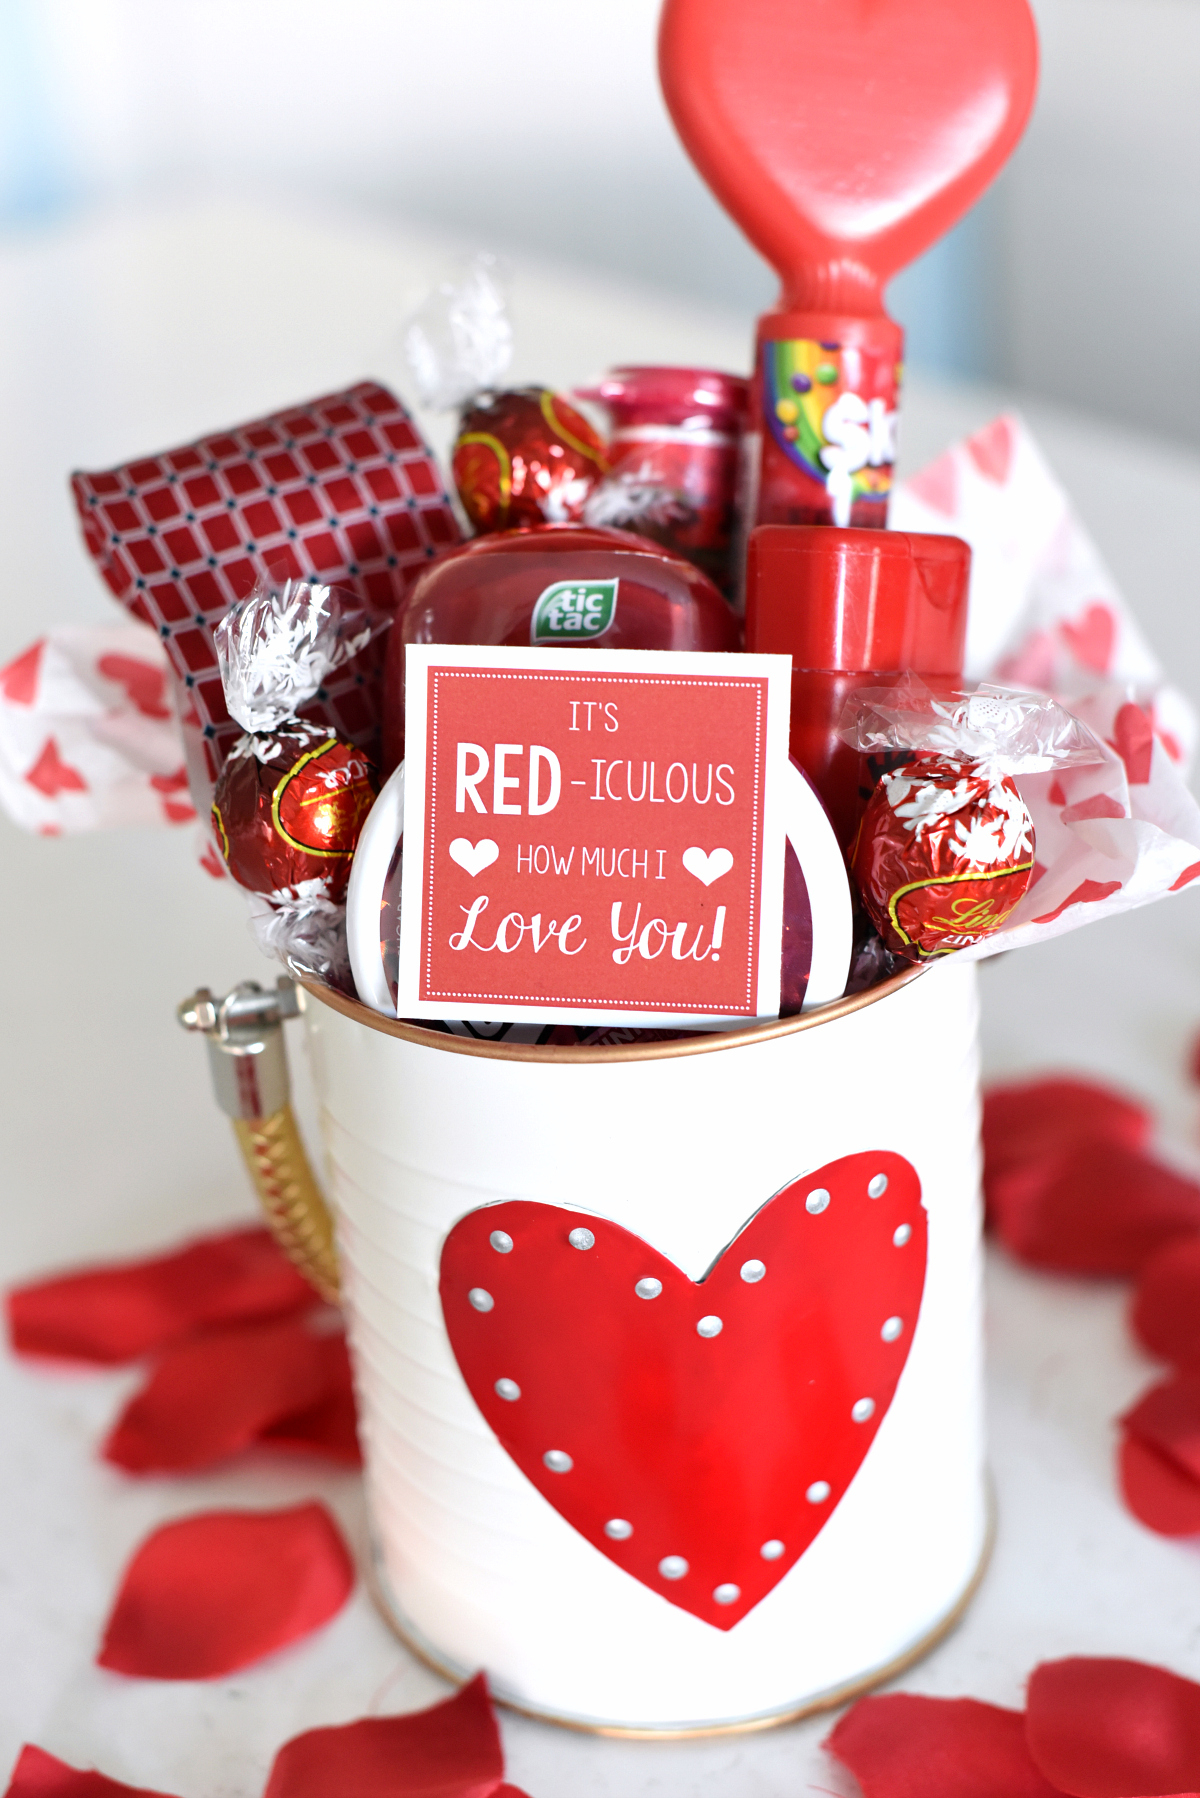 10 Most Popular Valentine Ideas For My Husband cute valentines day gift idea red iculous basket 12